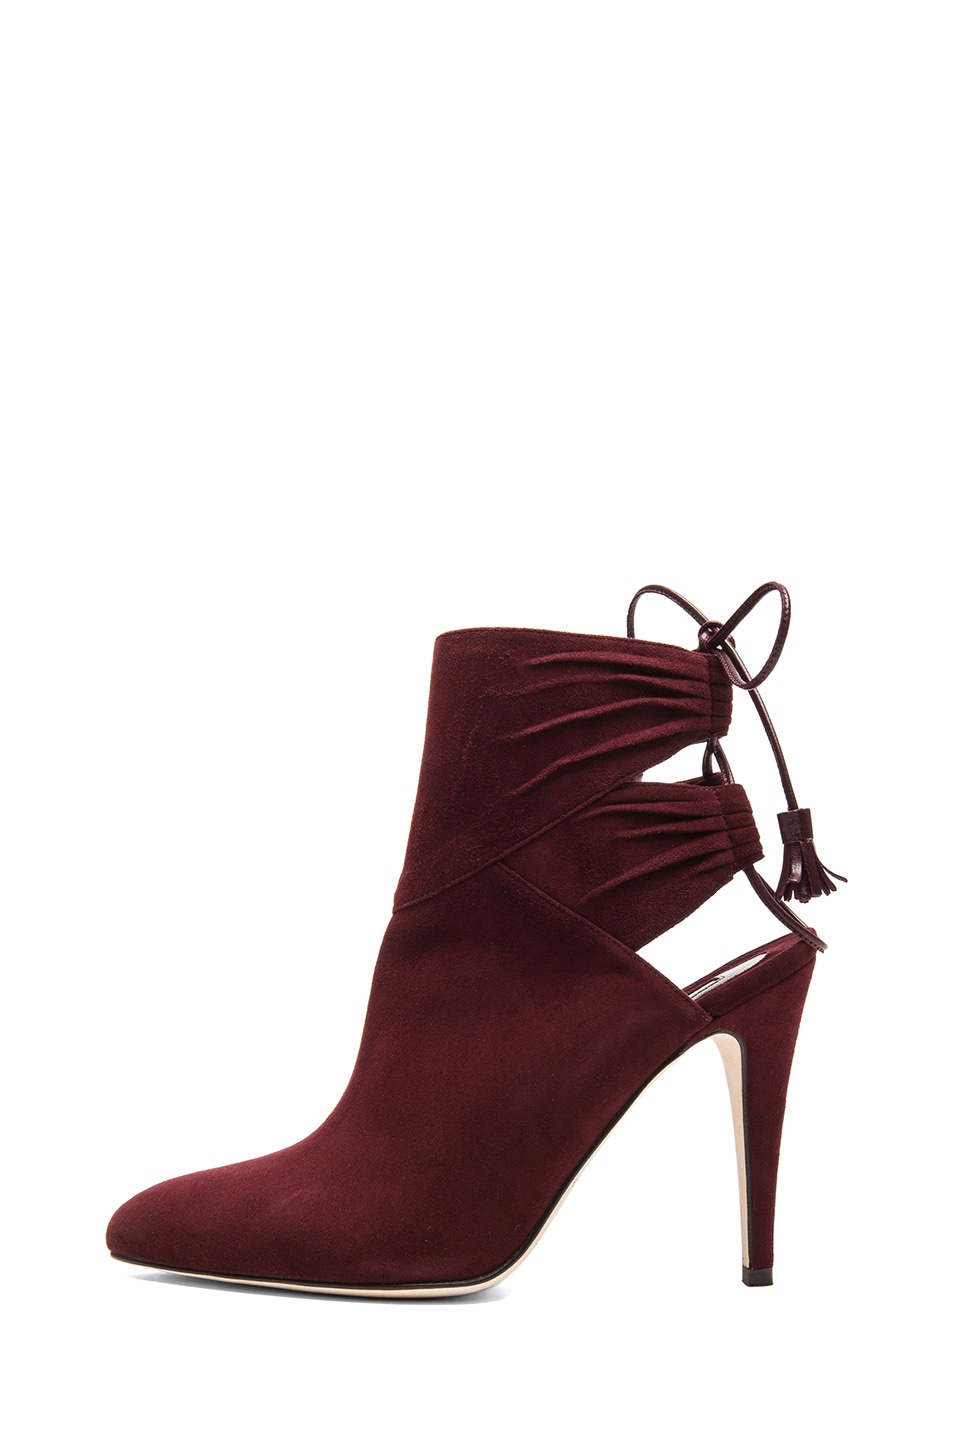 Image 1 of Brian Atwood Aron Suede Booties in Bordeaux